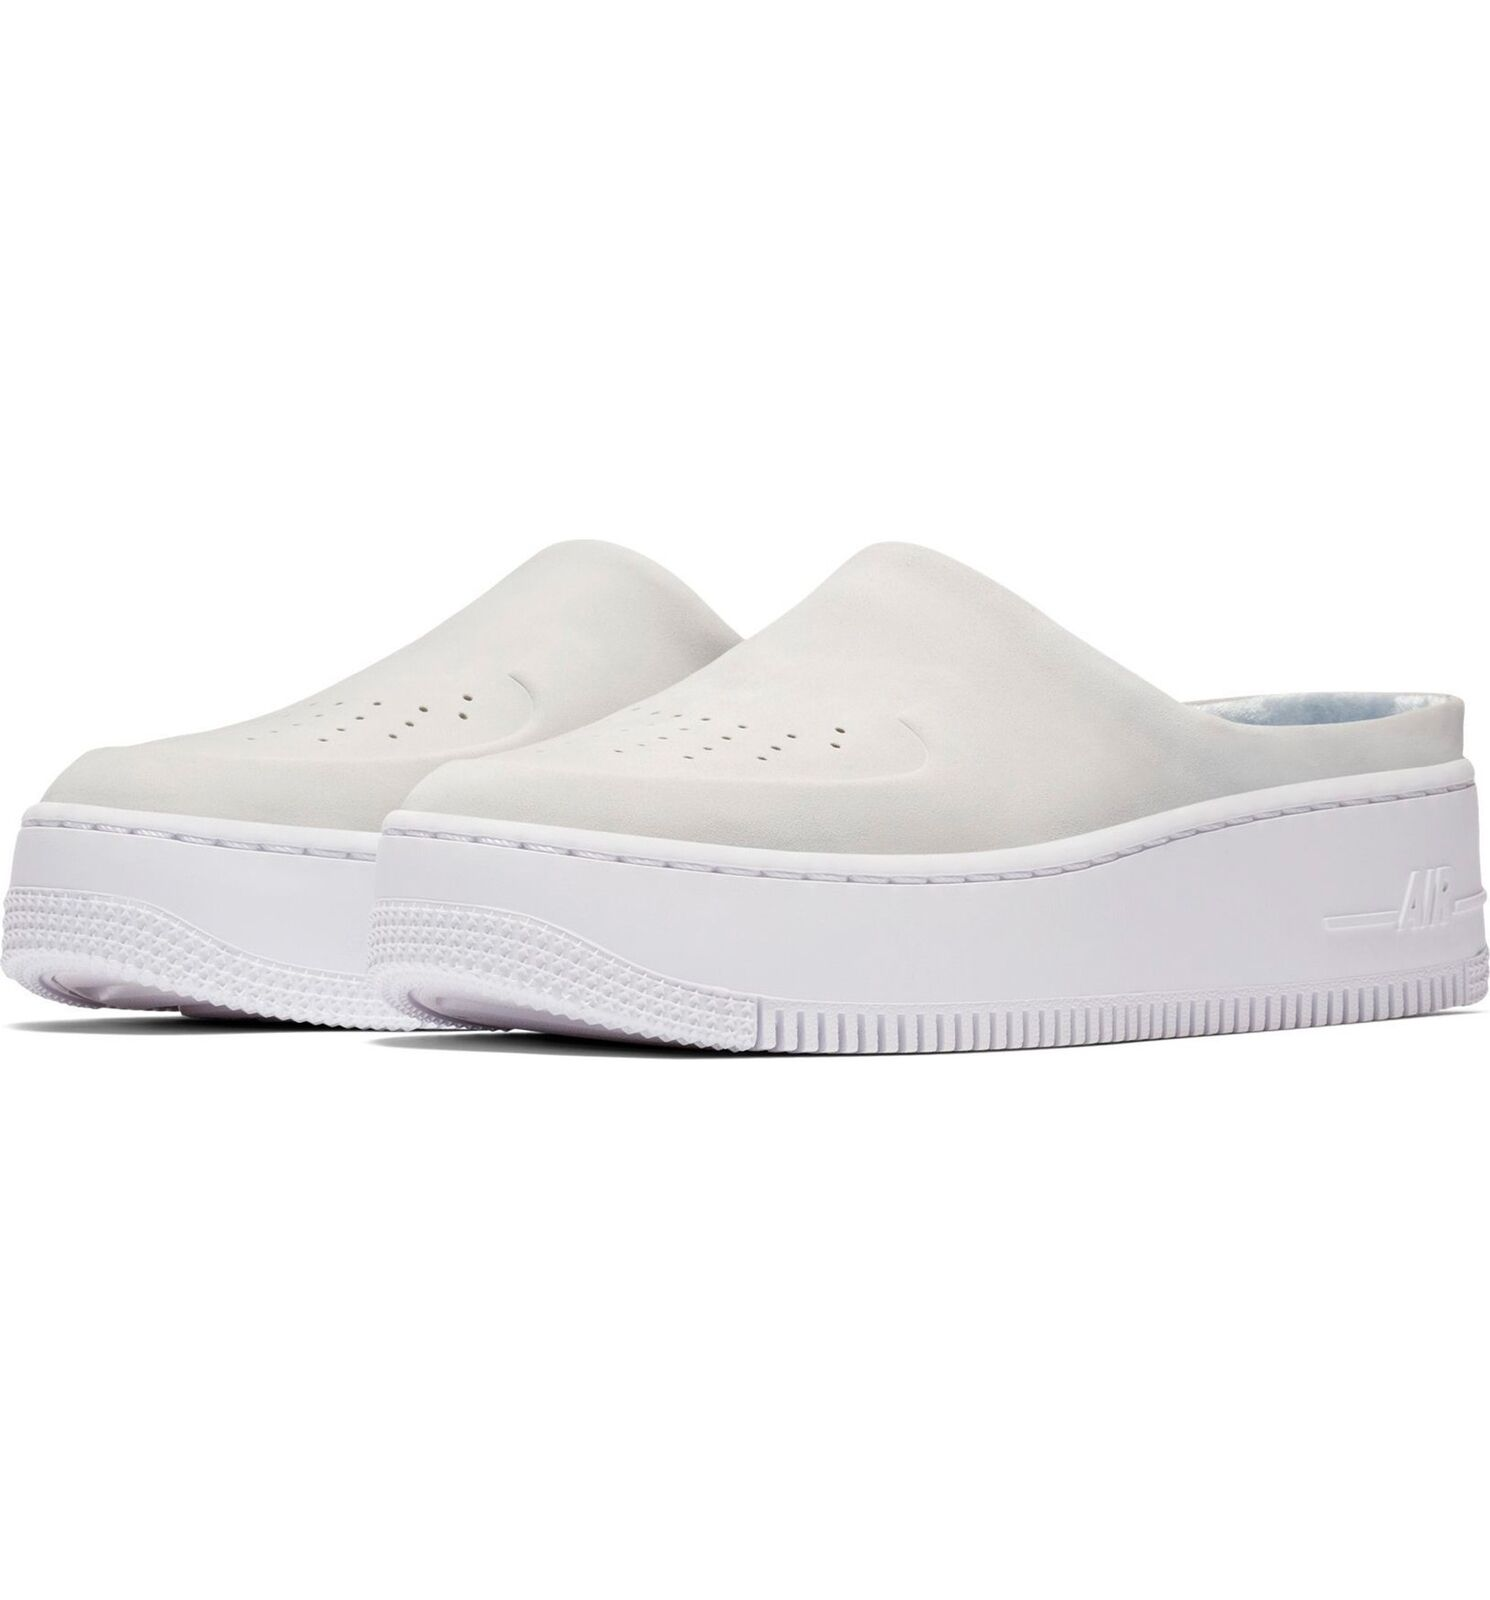 NIKE Air Force 1 Lover XX Slip-On Women's Mule Sneaker - SIZE 8.5 Price reduction The most popular shoes for men and women